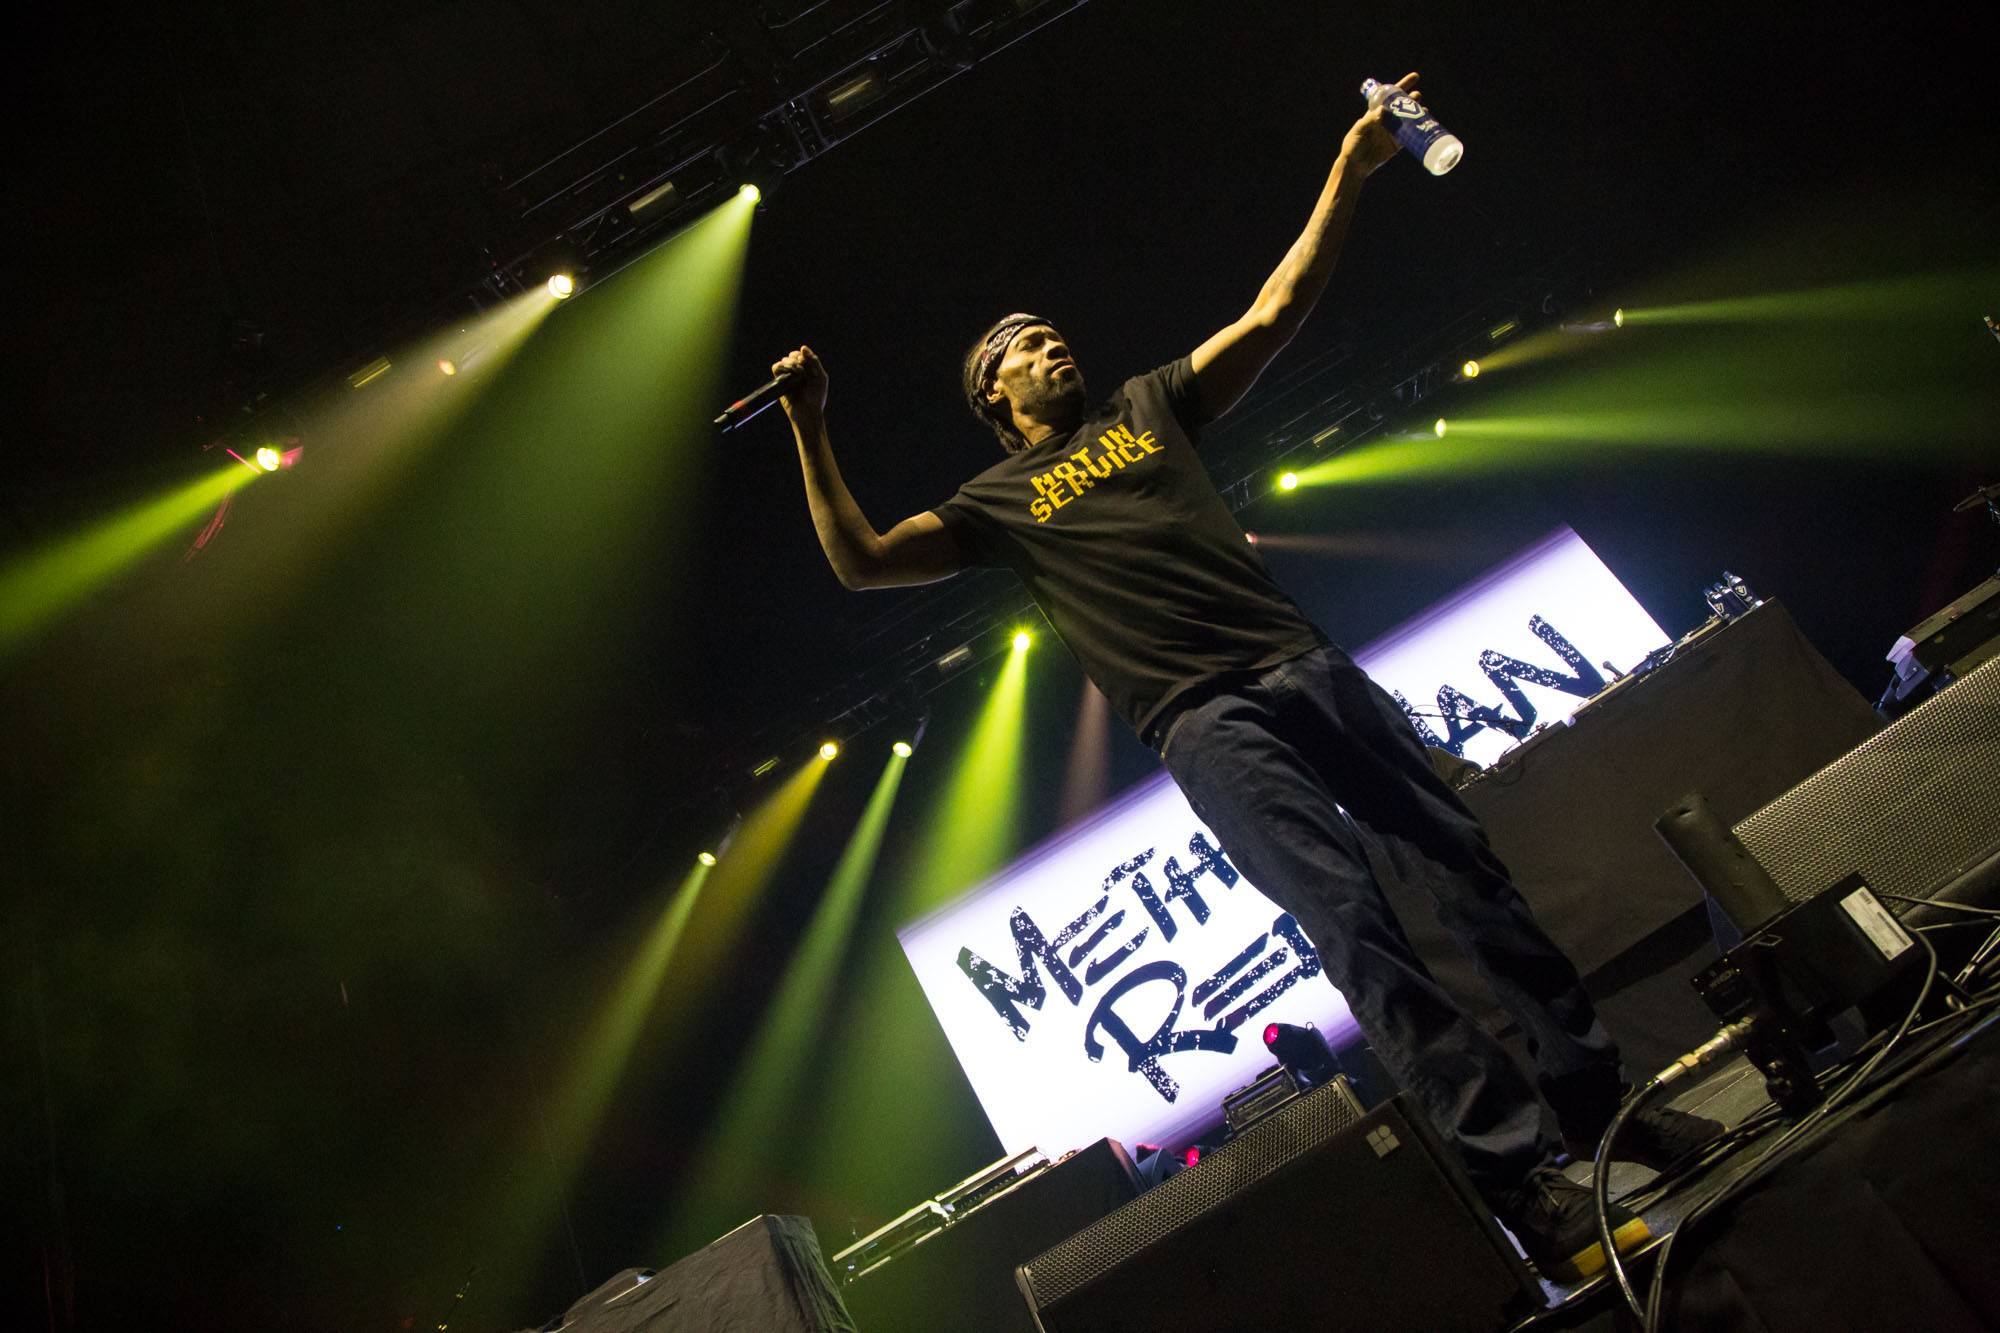 Redman and Streetlife at Rogers Arena, Vancouver, Apr. 14 2017. Kirk Chantraine photo.